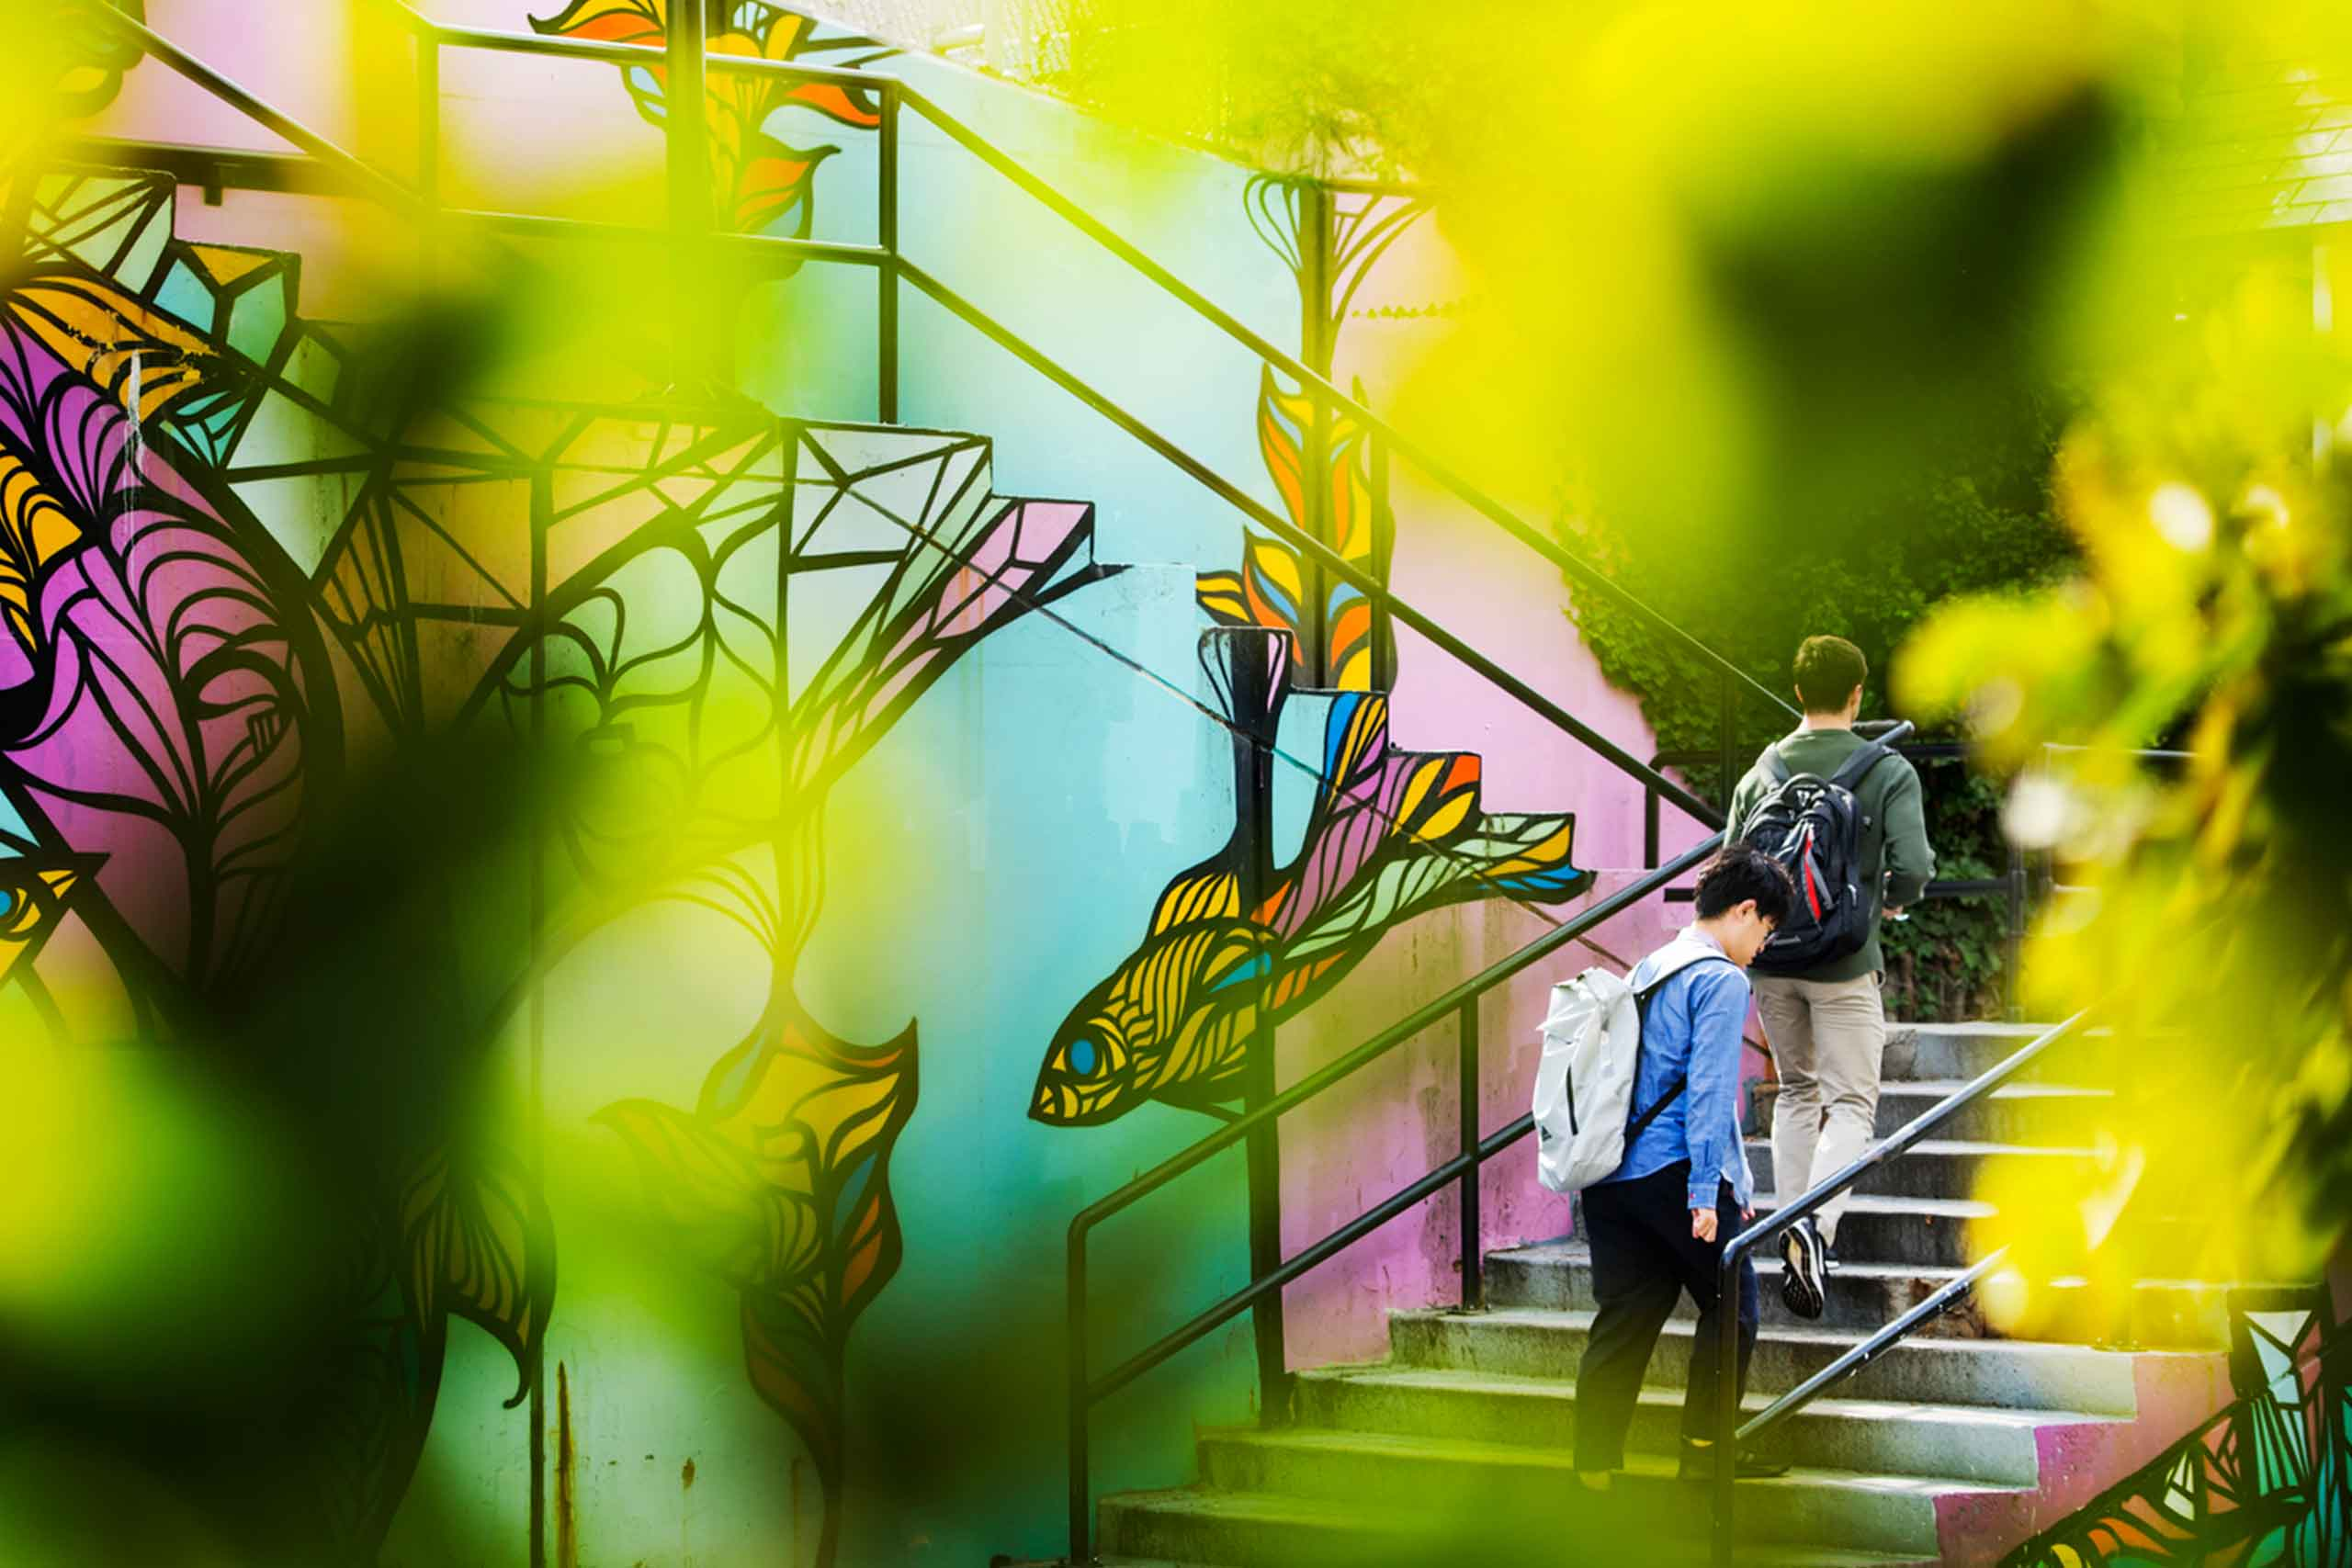 students walk up a stairway decorated with a colorful mural